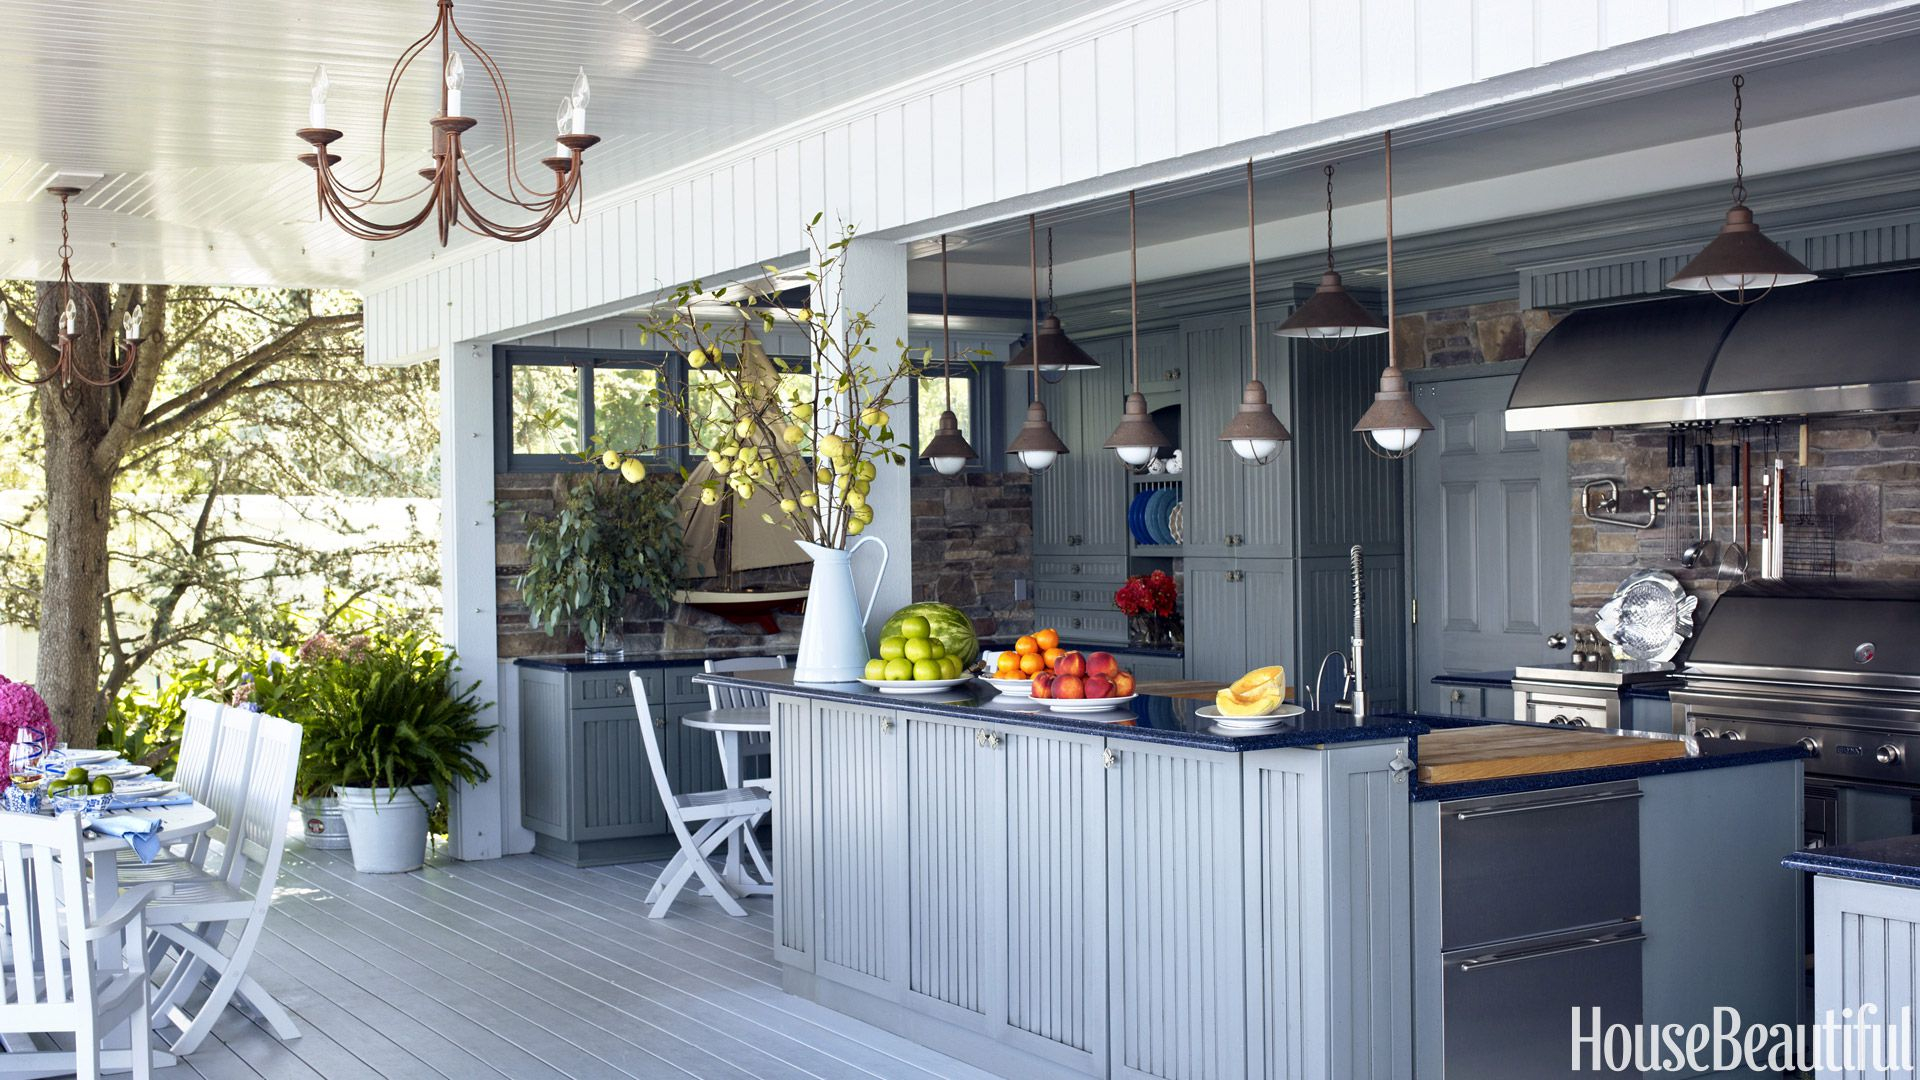 12 Outdoor Kitchen Design Ideas And Pictures Al Fresco Kitchen Styles for 13 Clever Concepts of How to Make Backyard Kitchen Ideas